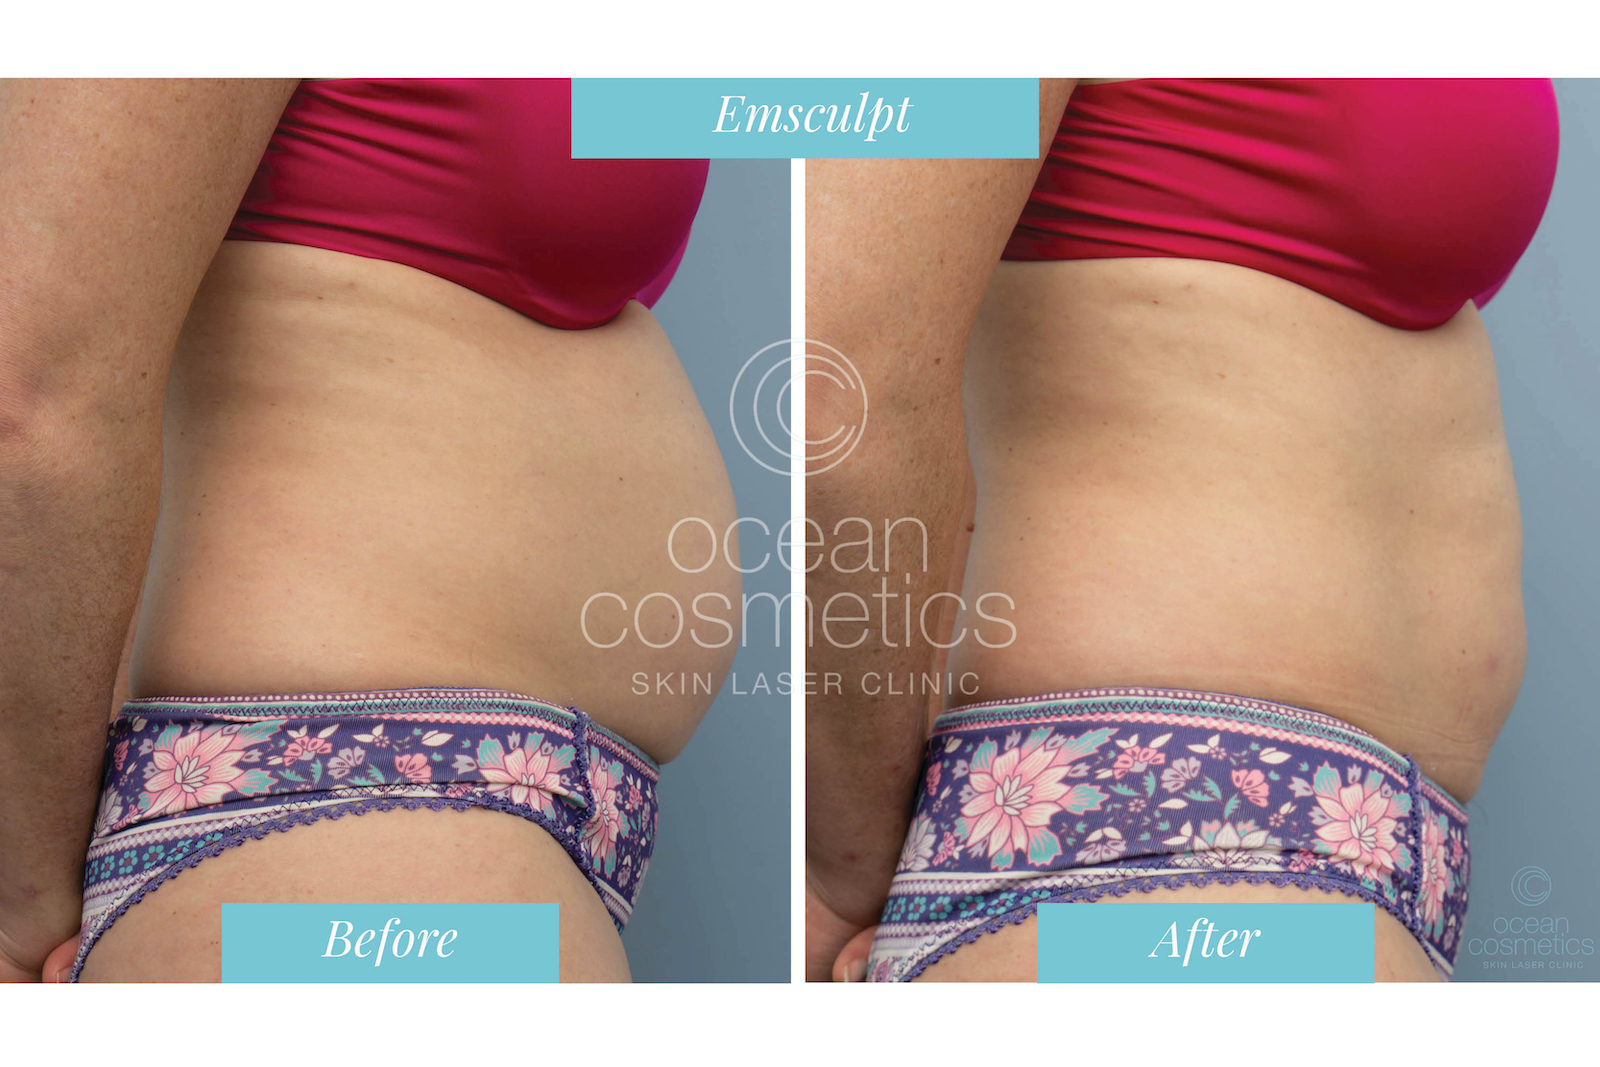 Ocean Cosmetics | Emsculpt Perth | Spa and Clinic | Dr Gina